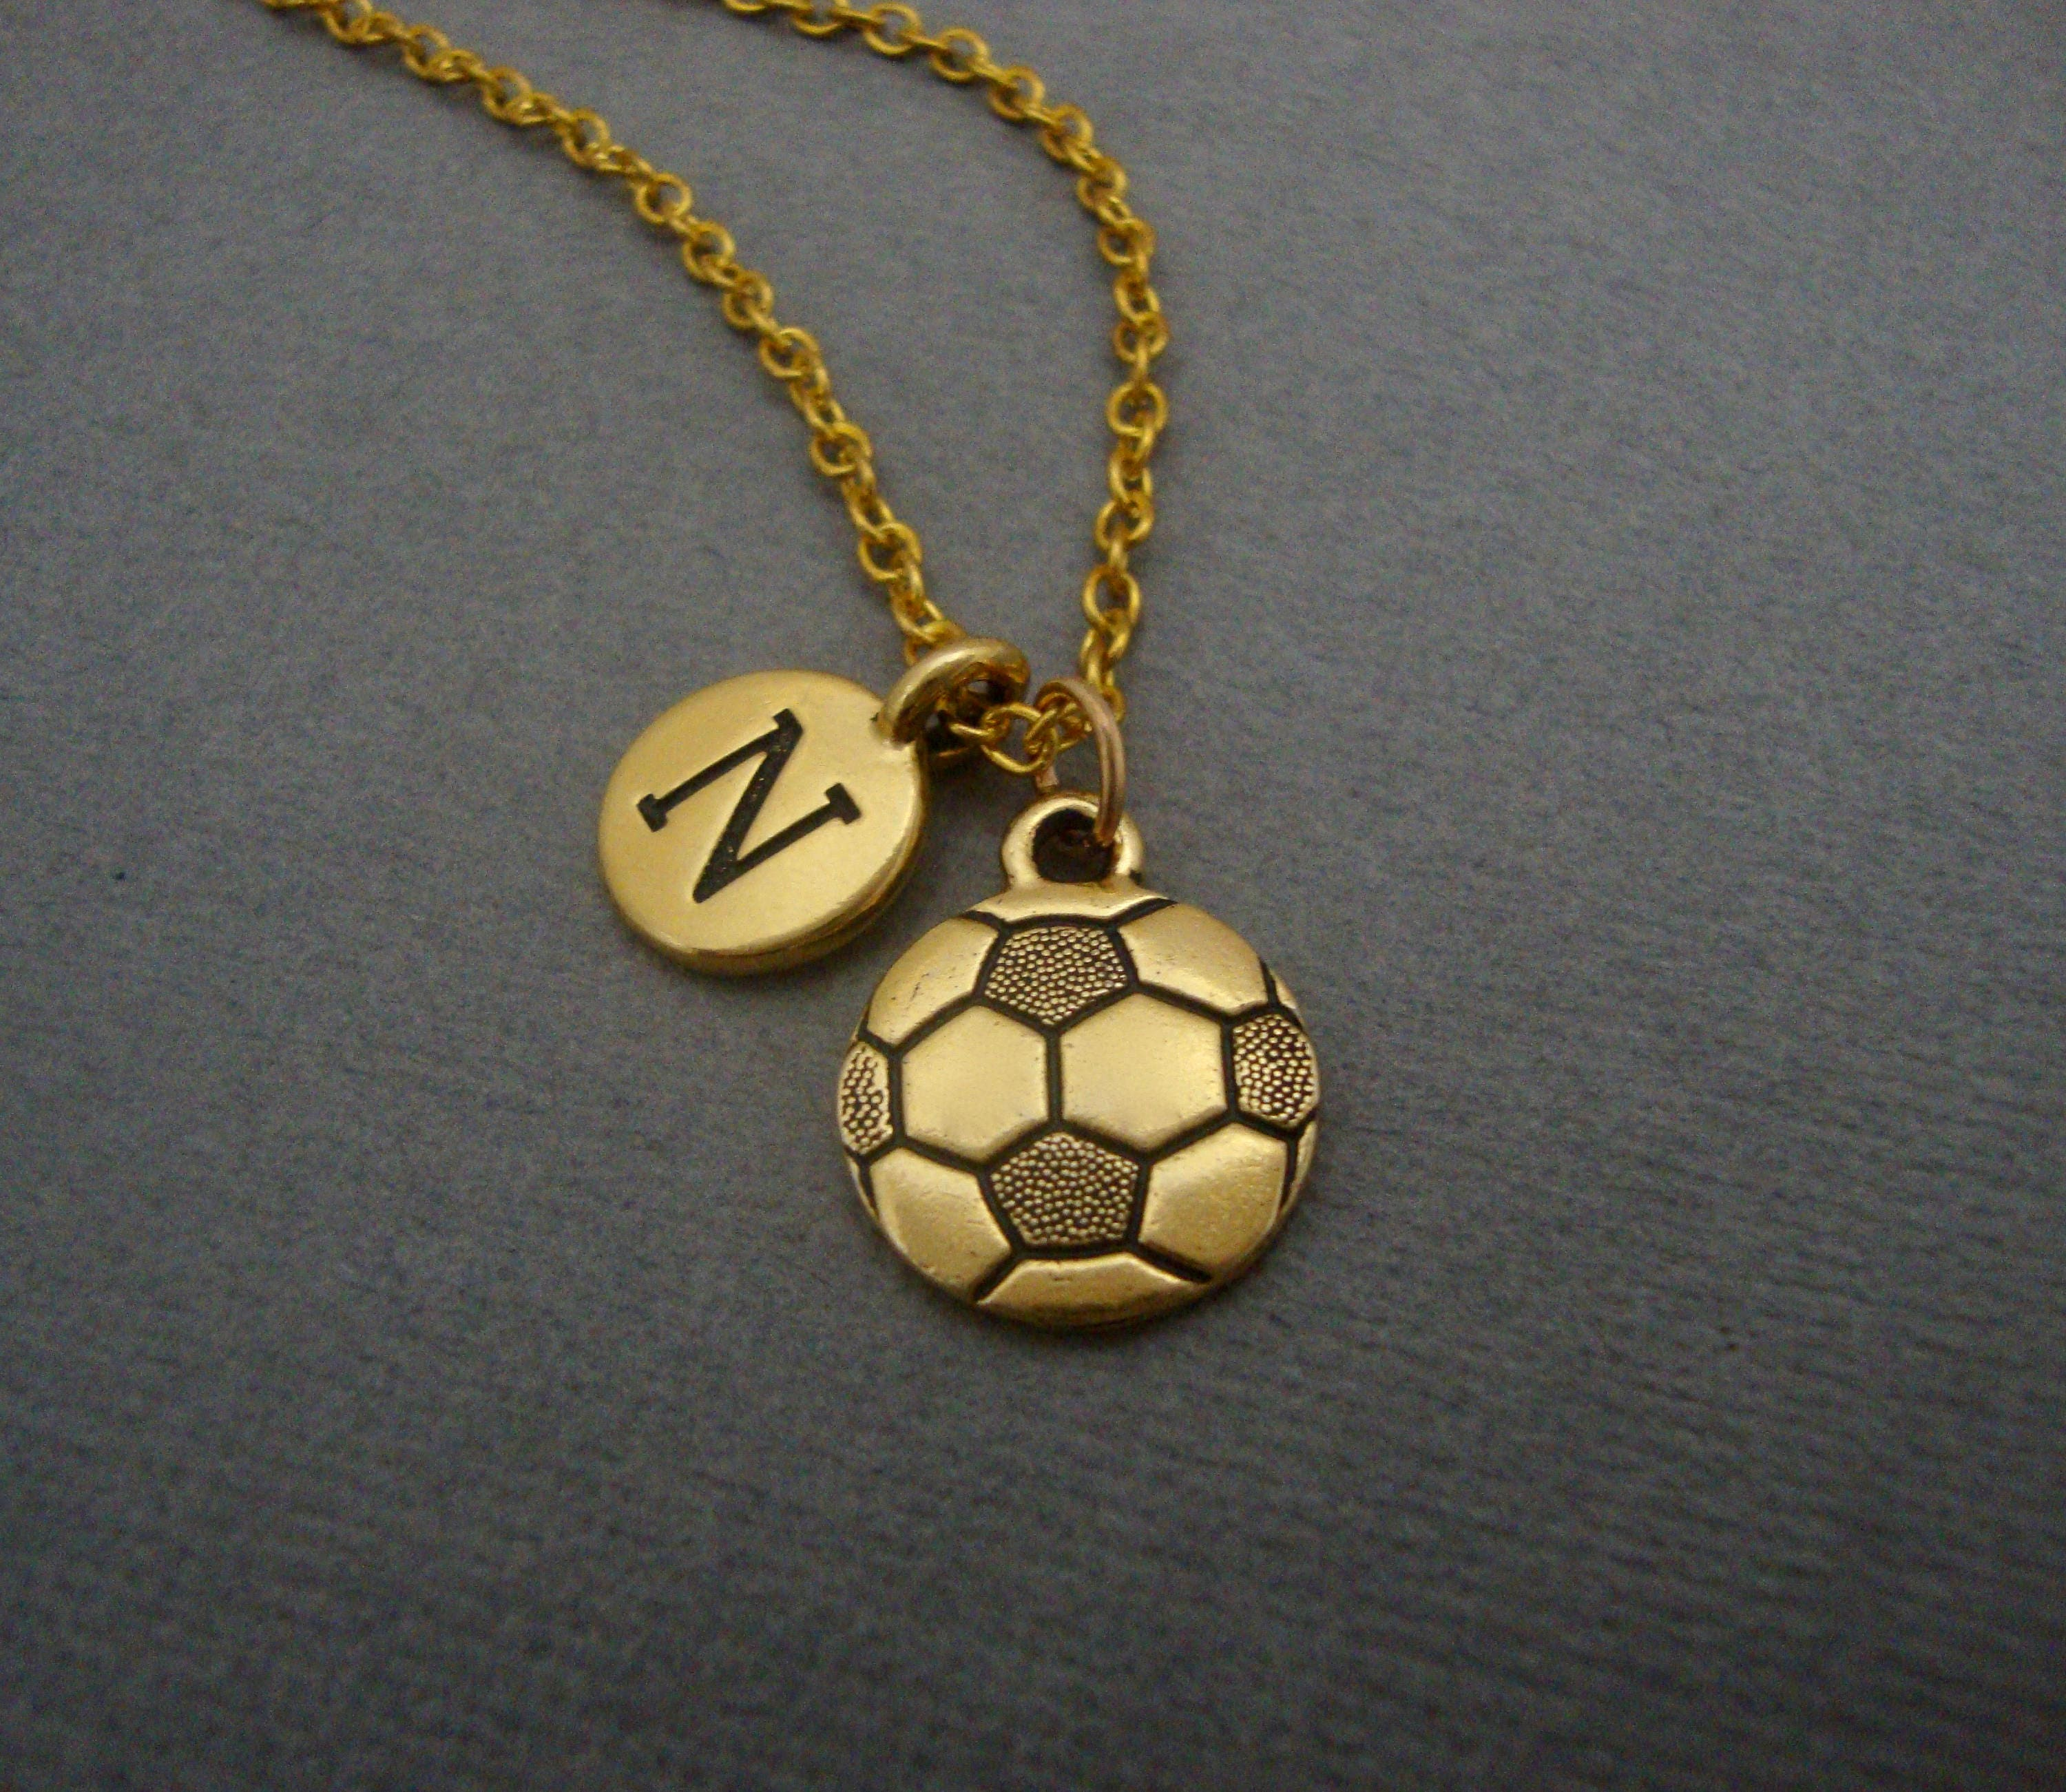 index pendant s category product view mom id pins faux catalog soccer rhinestone goldtone necklace